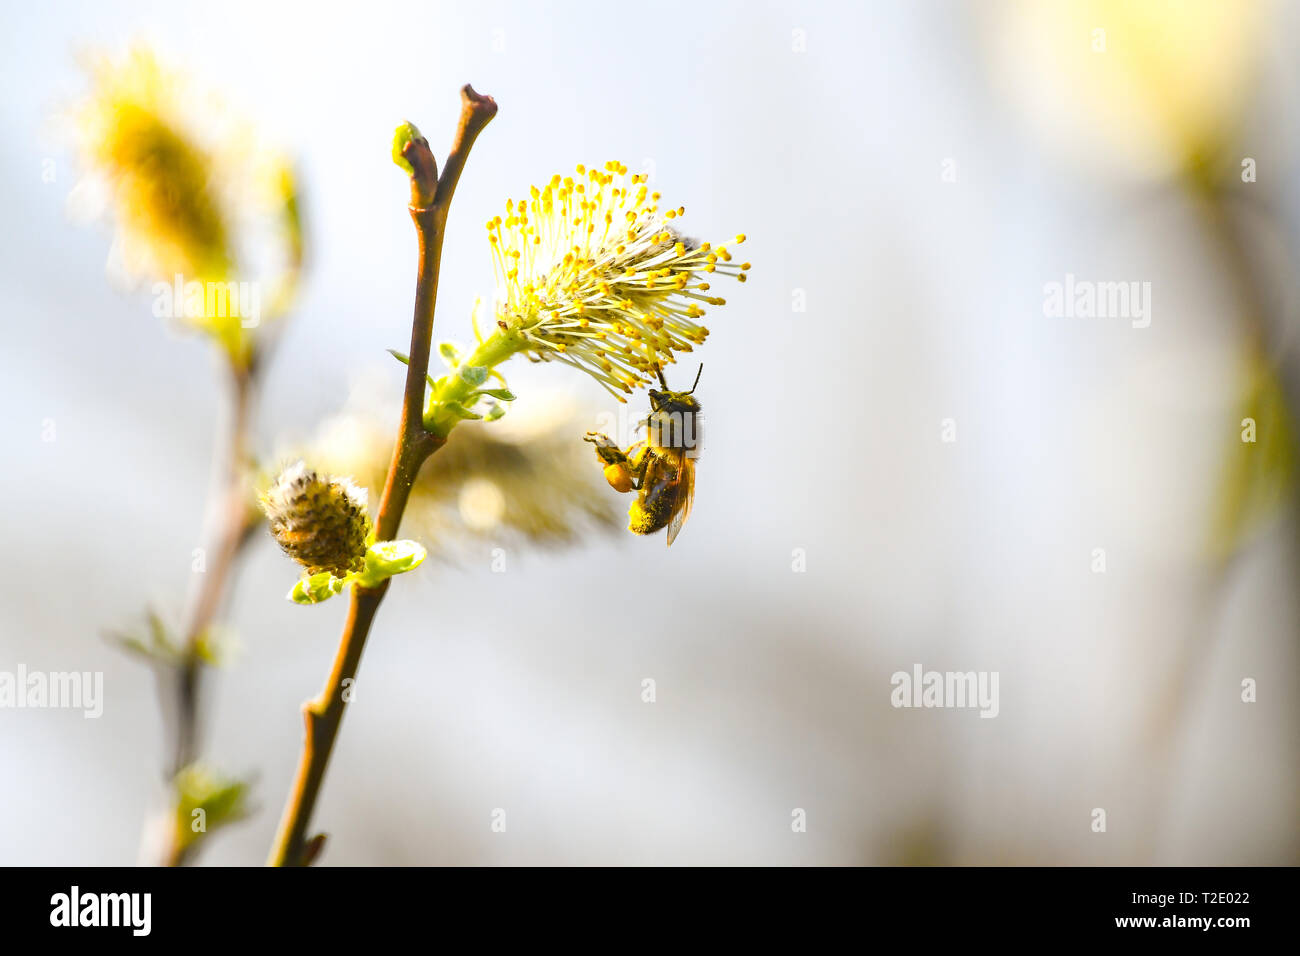 A honey Bee collects pollen from Spring Catkins or Pussy Willow with a large amount of pollen in its pollen leg basket Stock Photo